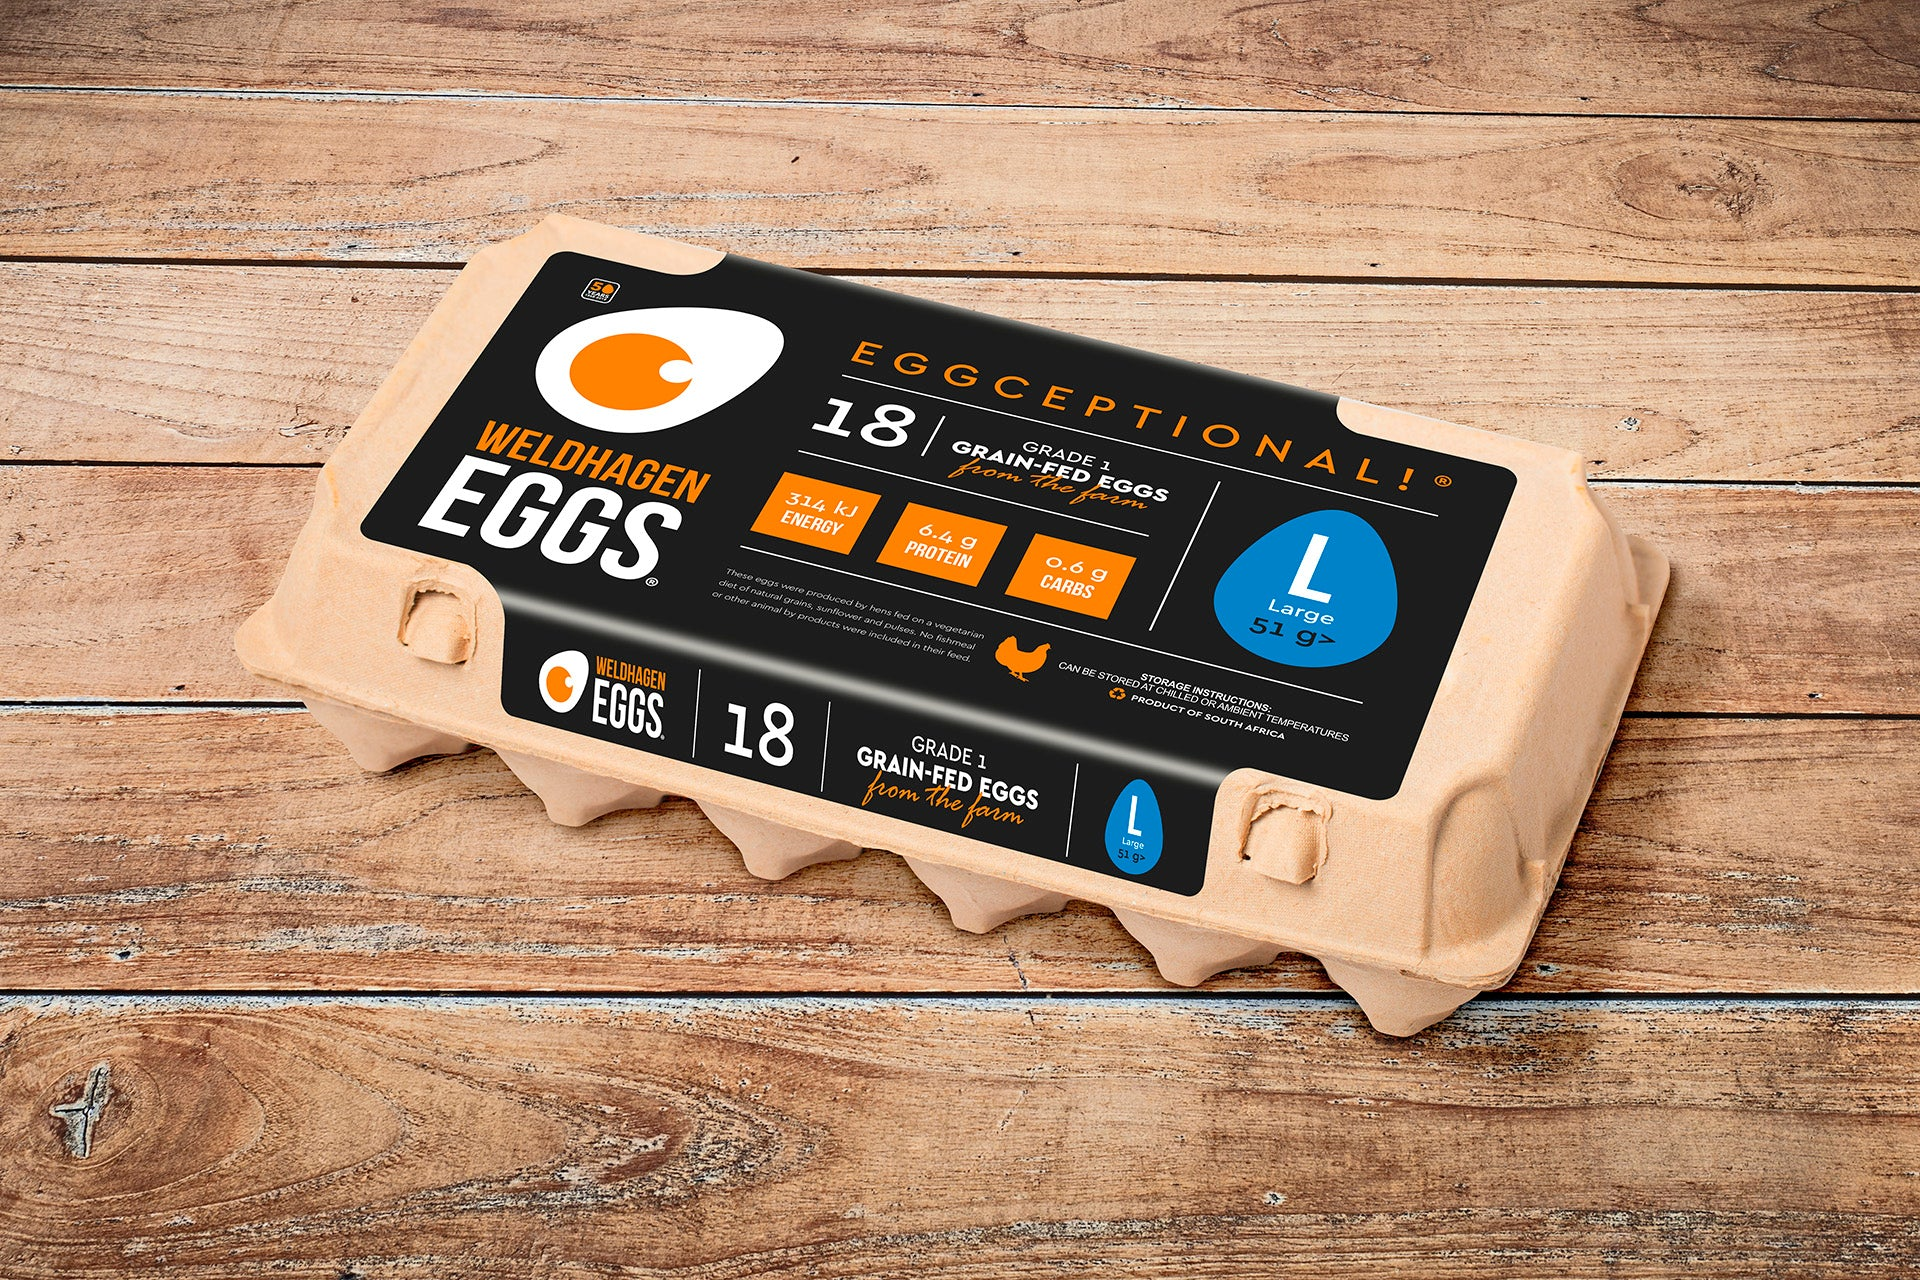 WELDHAGEN EGGS - 18'S PRE-PACK (LARGE)